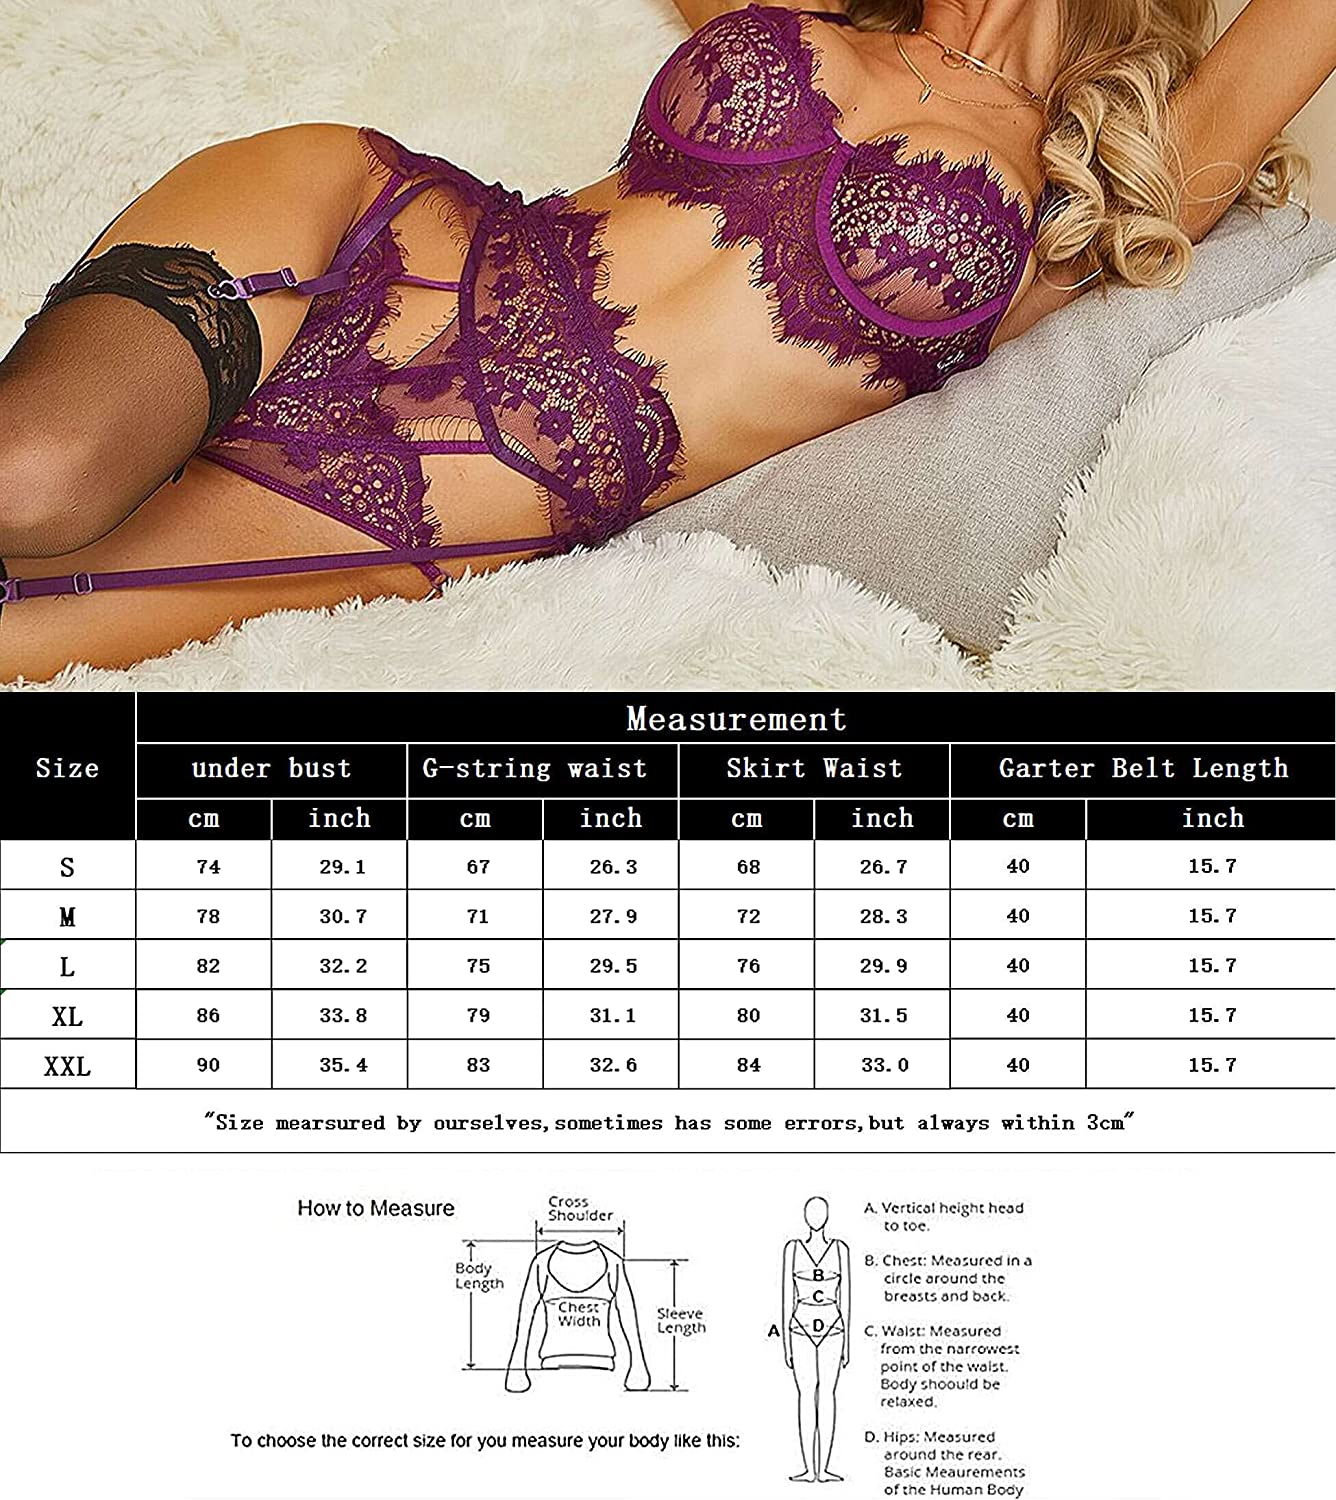 Tracy's Dog Women Sexy Lingerie Set with Garter Belt Floral Lace Bra and Panty Set Strappy Bodysuit Lingerie Blue XXL